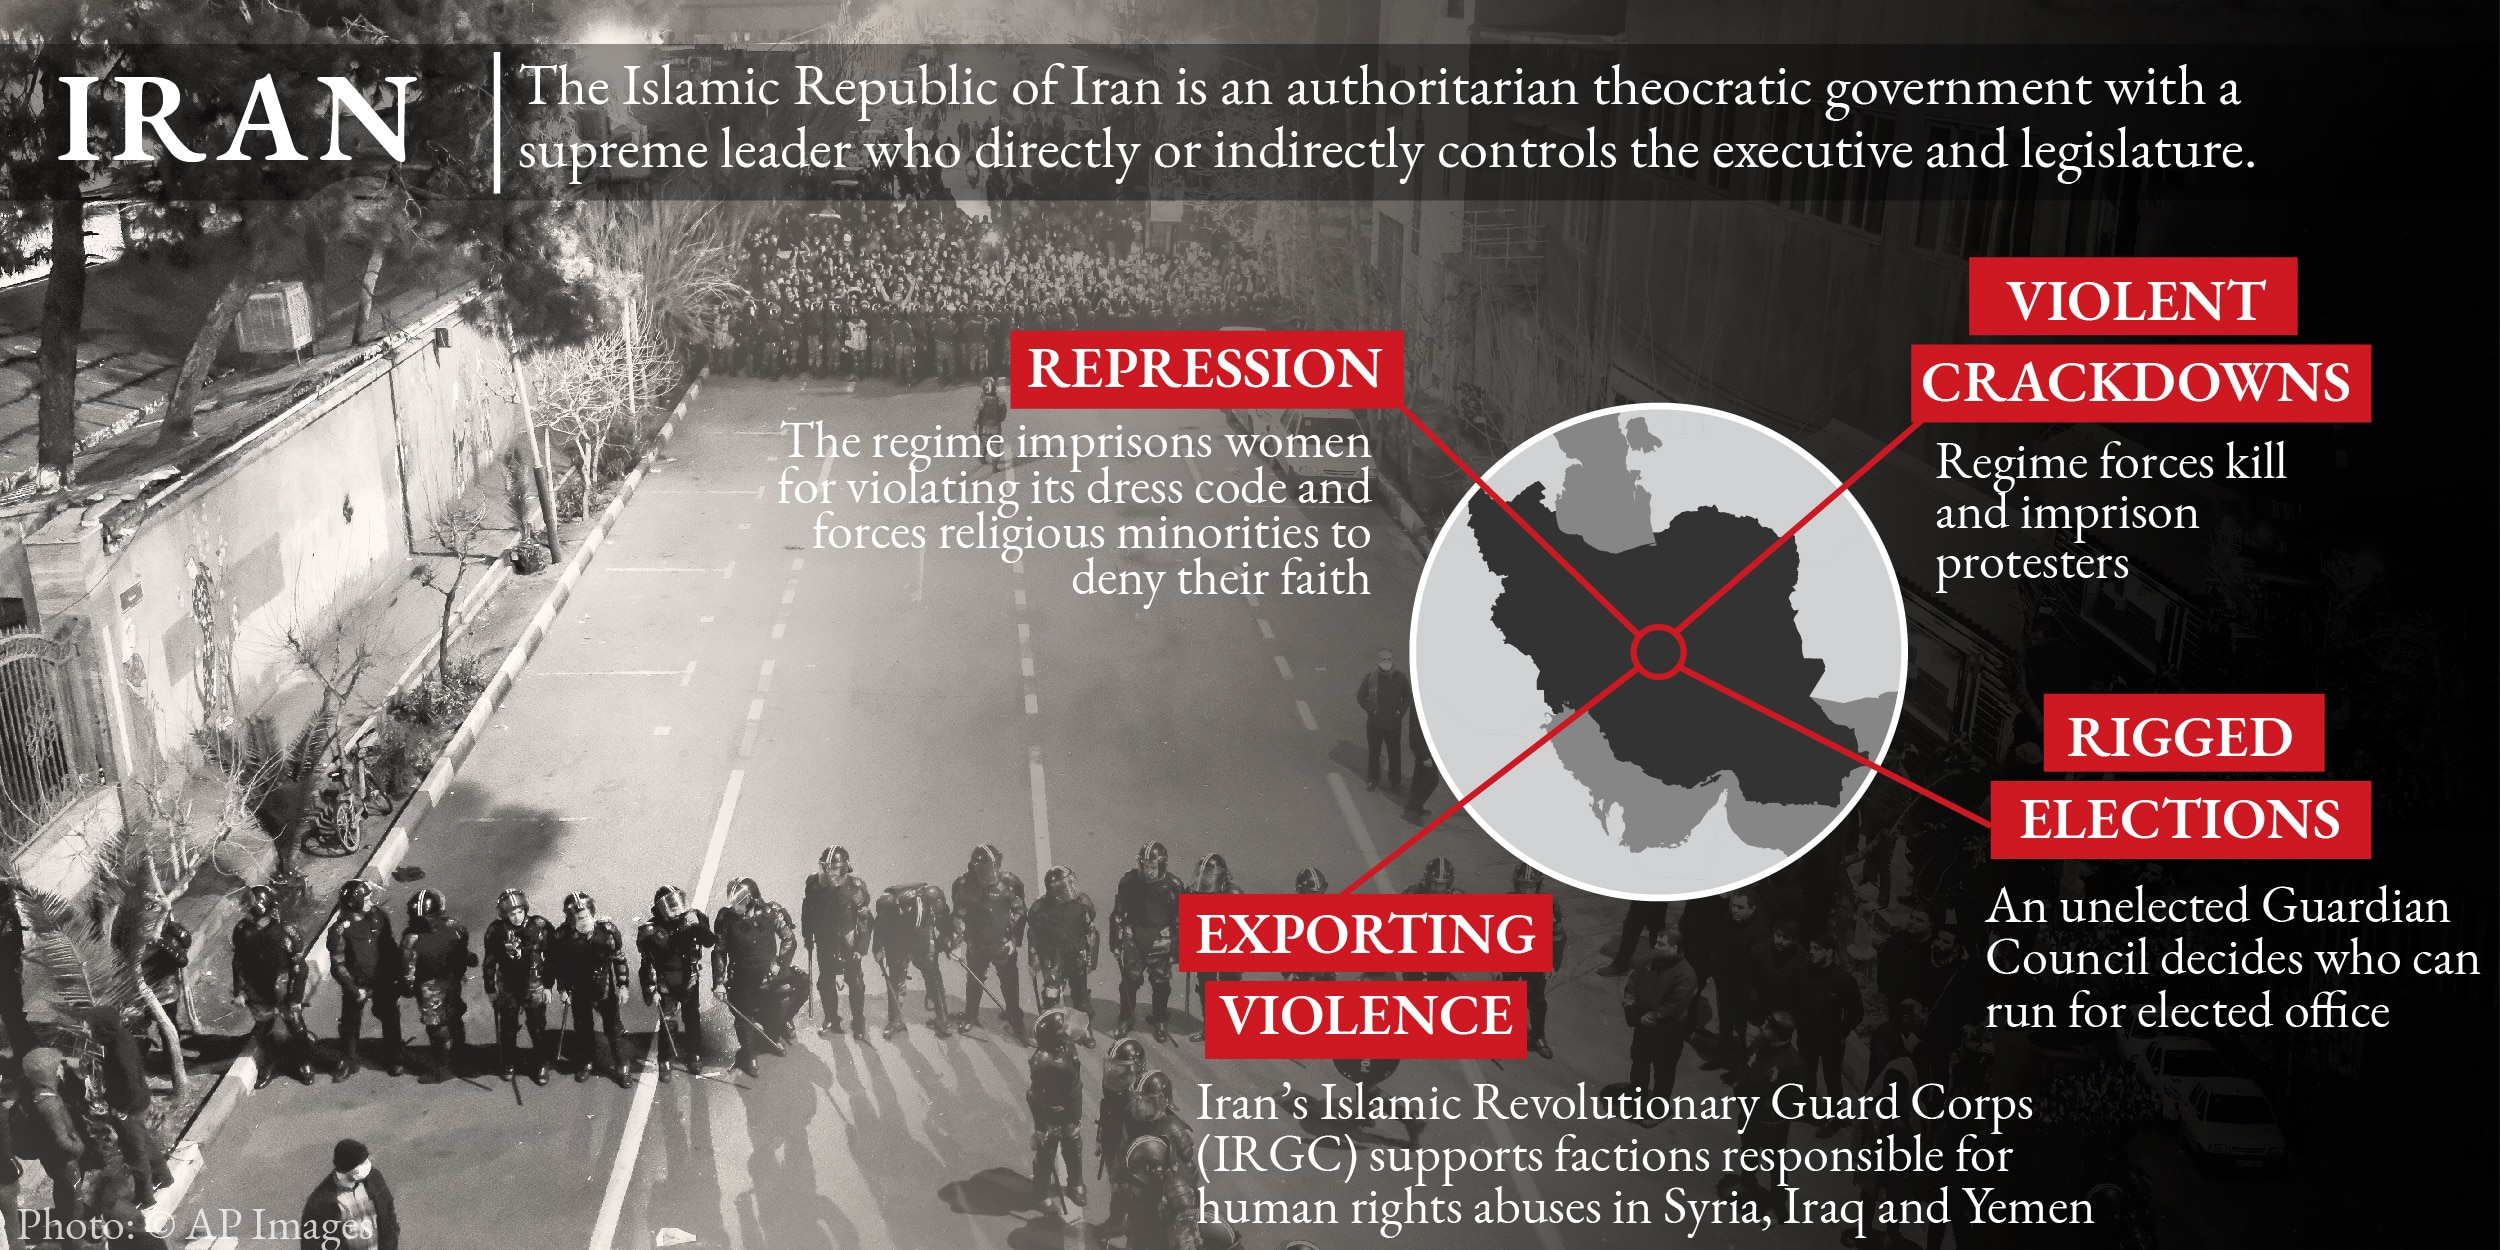 Infographic on Iran's human rights practices, with photo © AP Images (State Dept.)